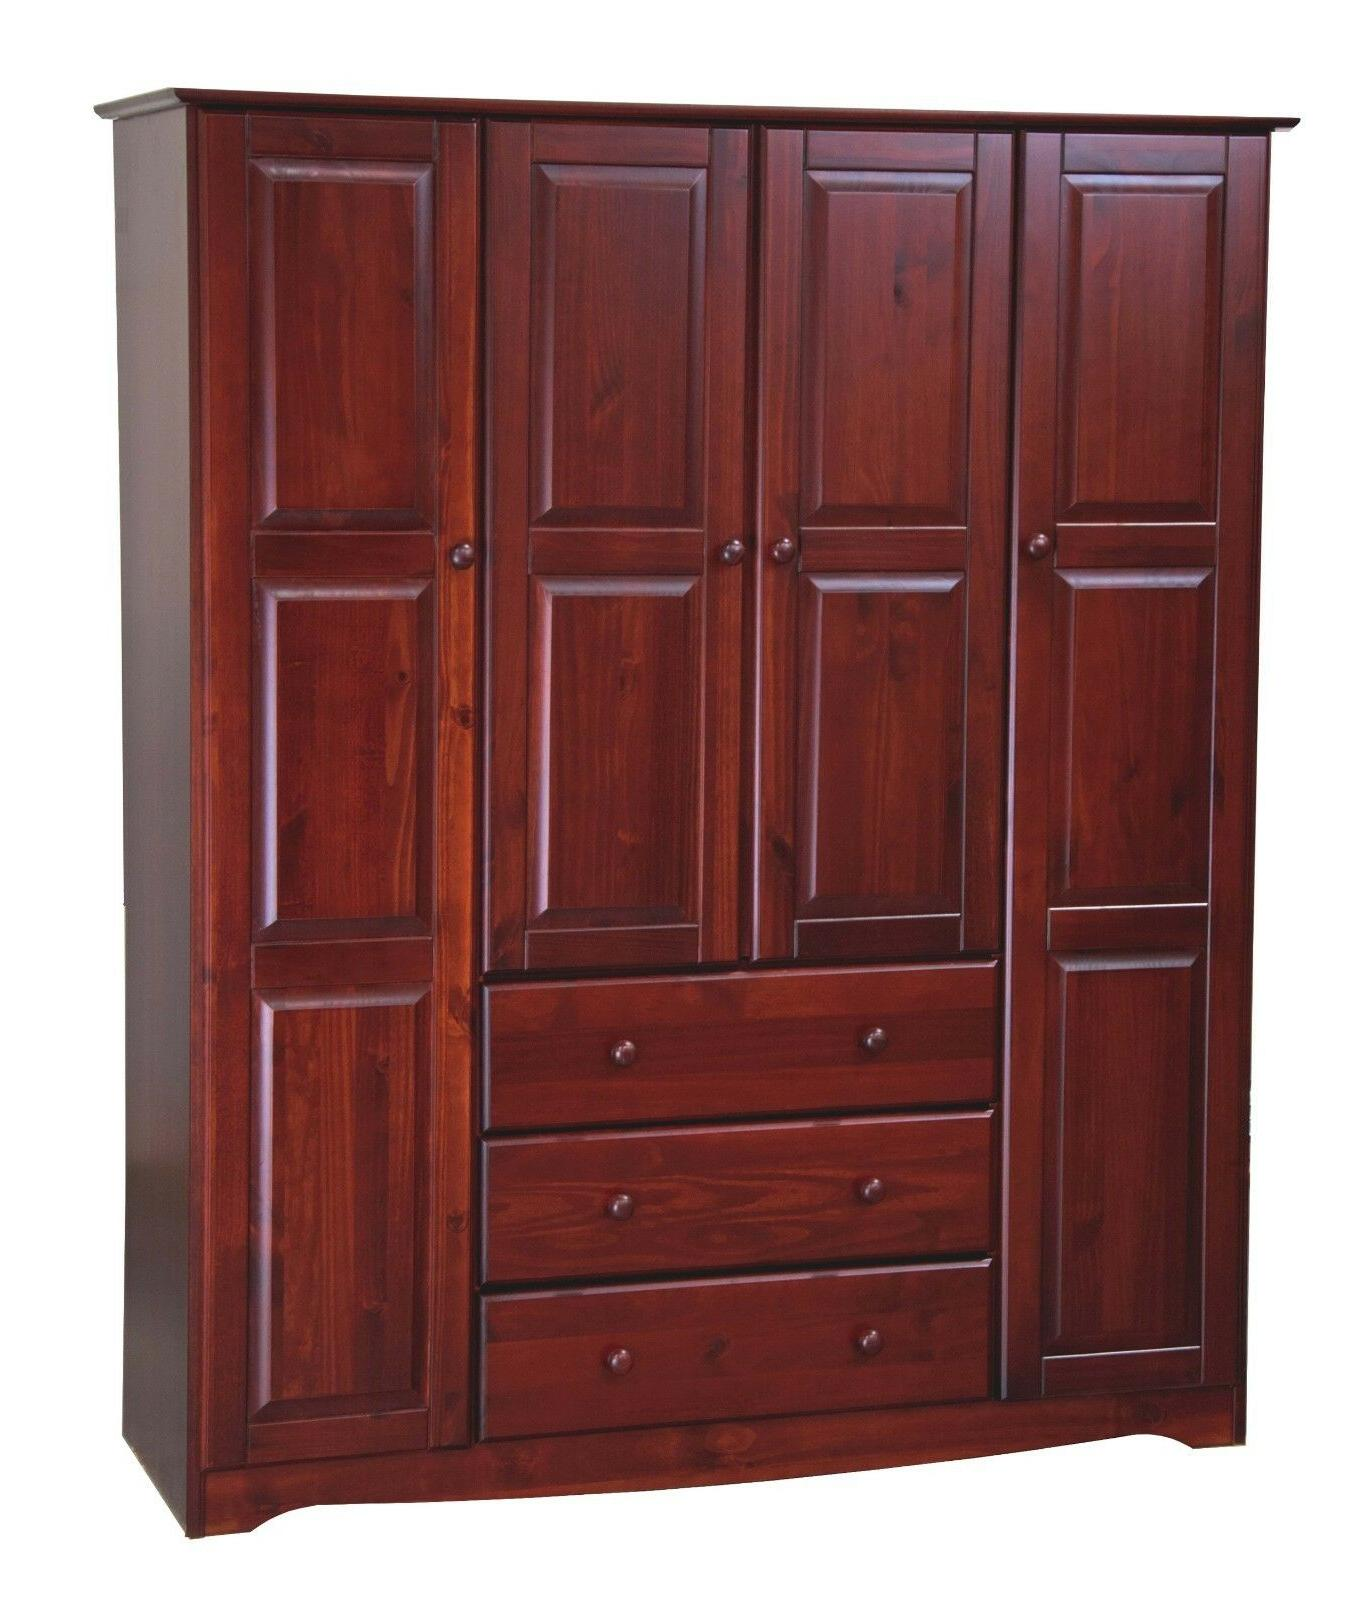 100% Solid Wood Wardrobe/Armoire/Closet by 5